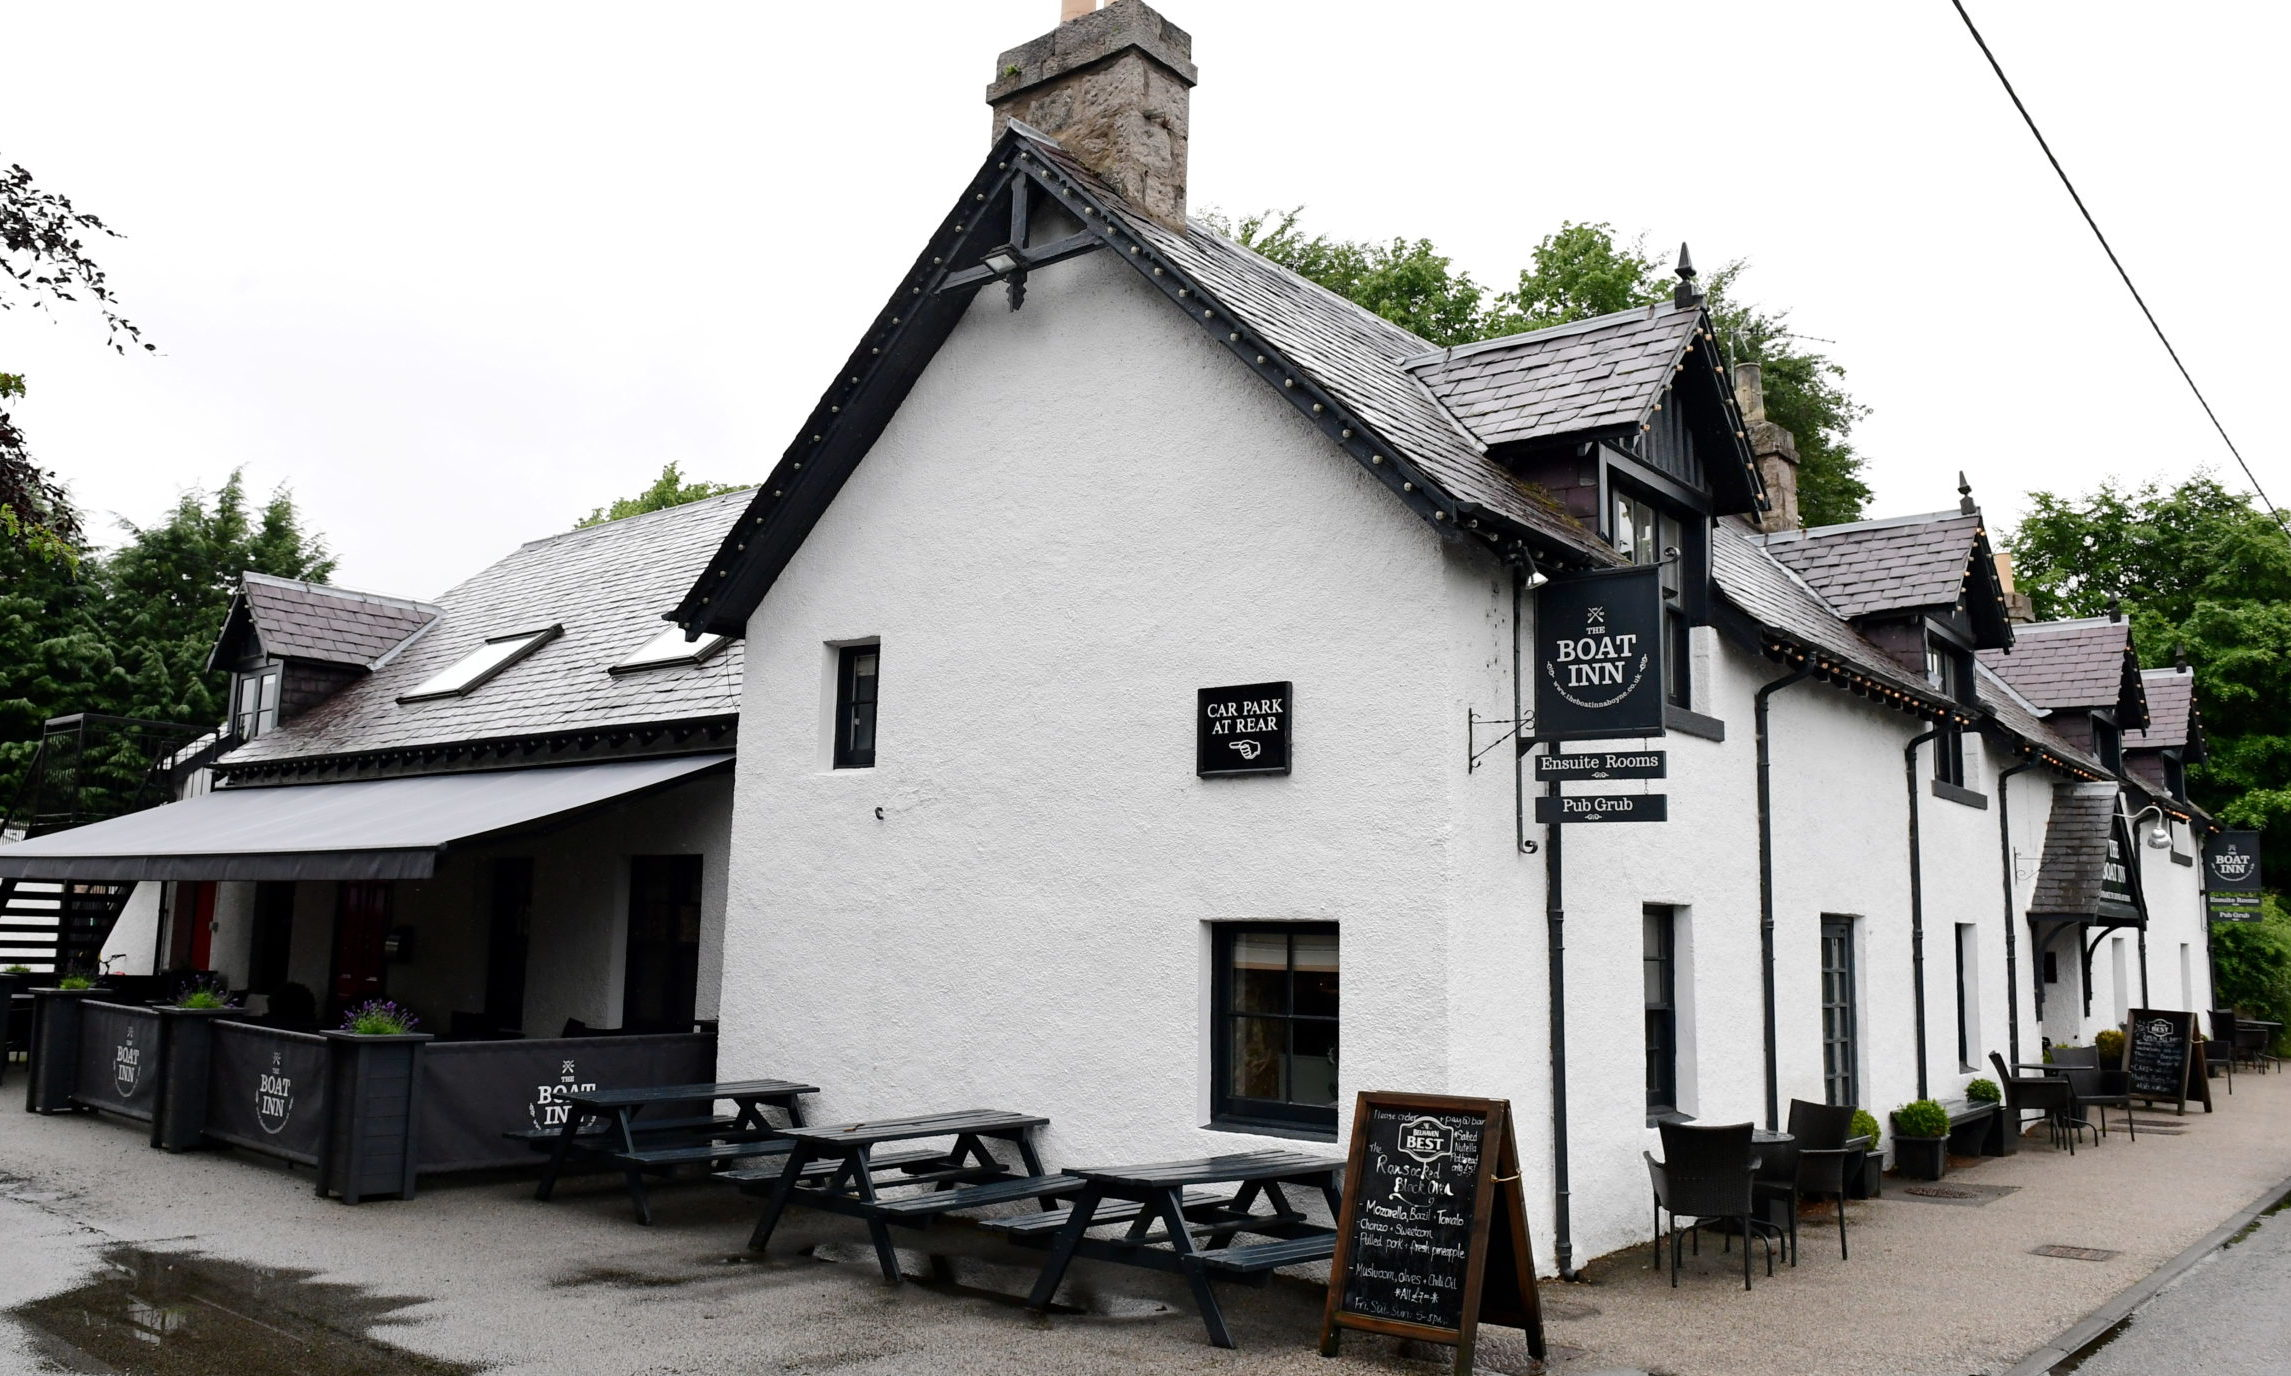 The Boat Inn, Aboyne.          Picture by Kami Thomson